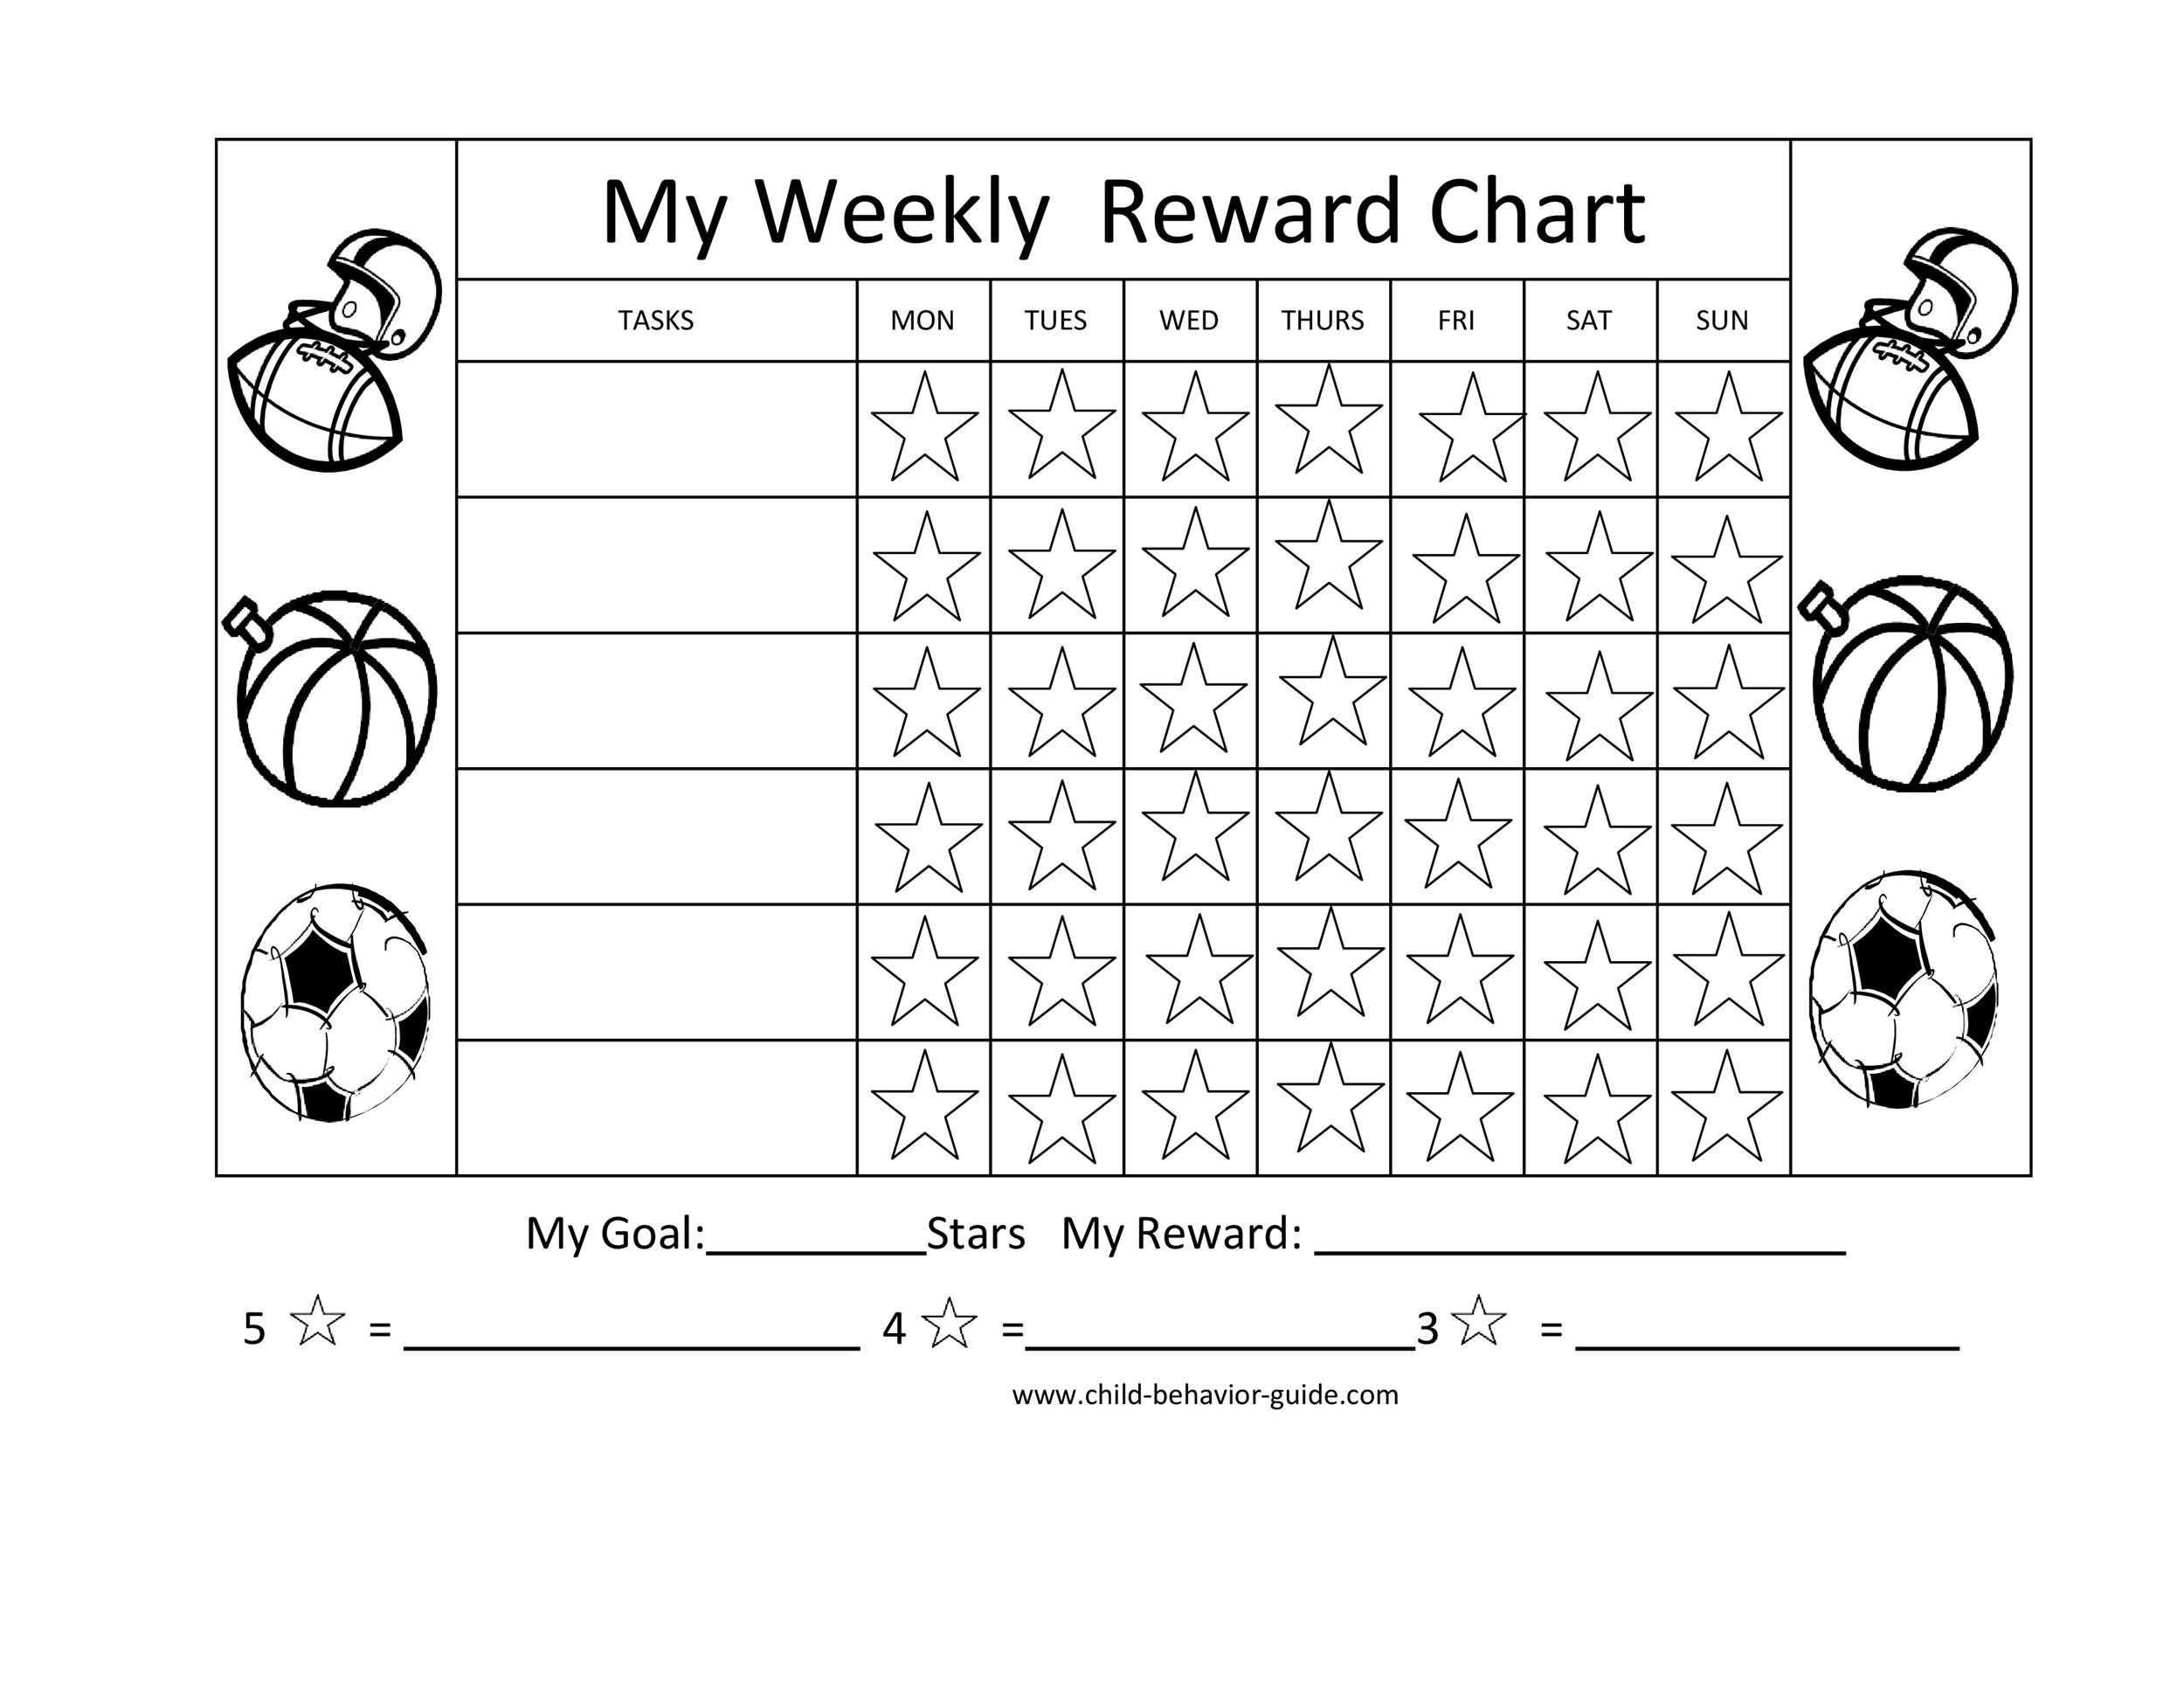 photo regarding Free Printable Incentive Charts titled 40 Printable Gain Charts for Children (PDF, Excel Term)